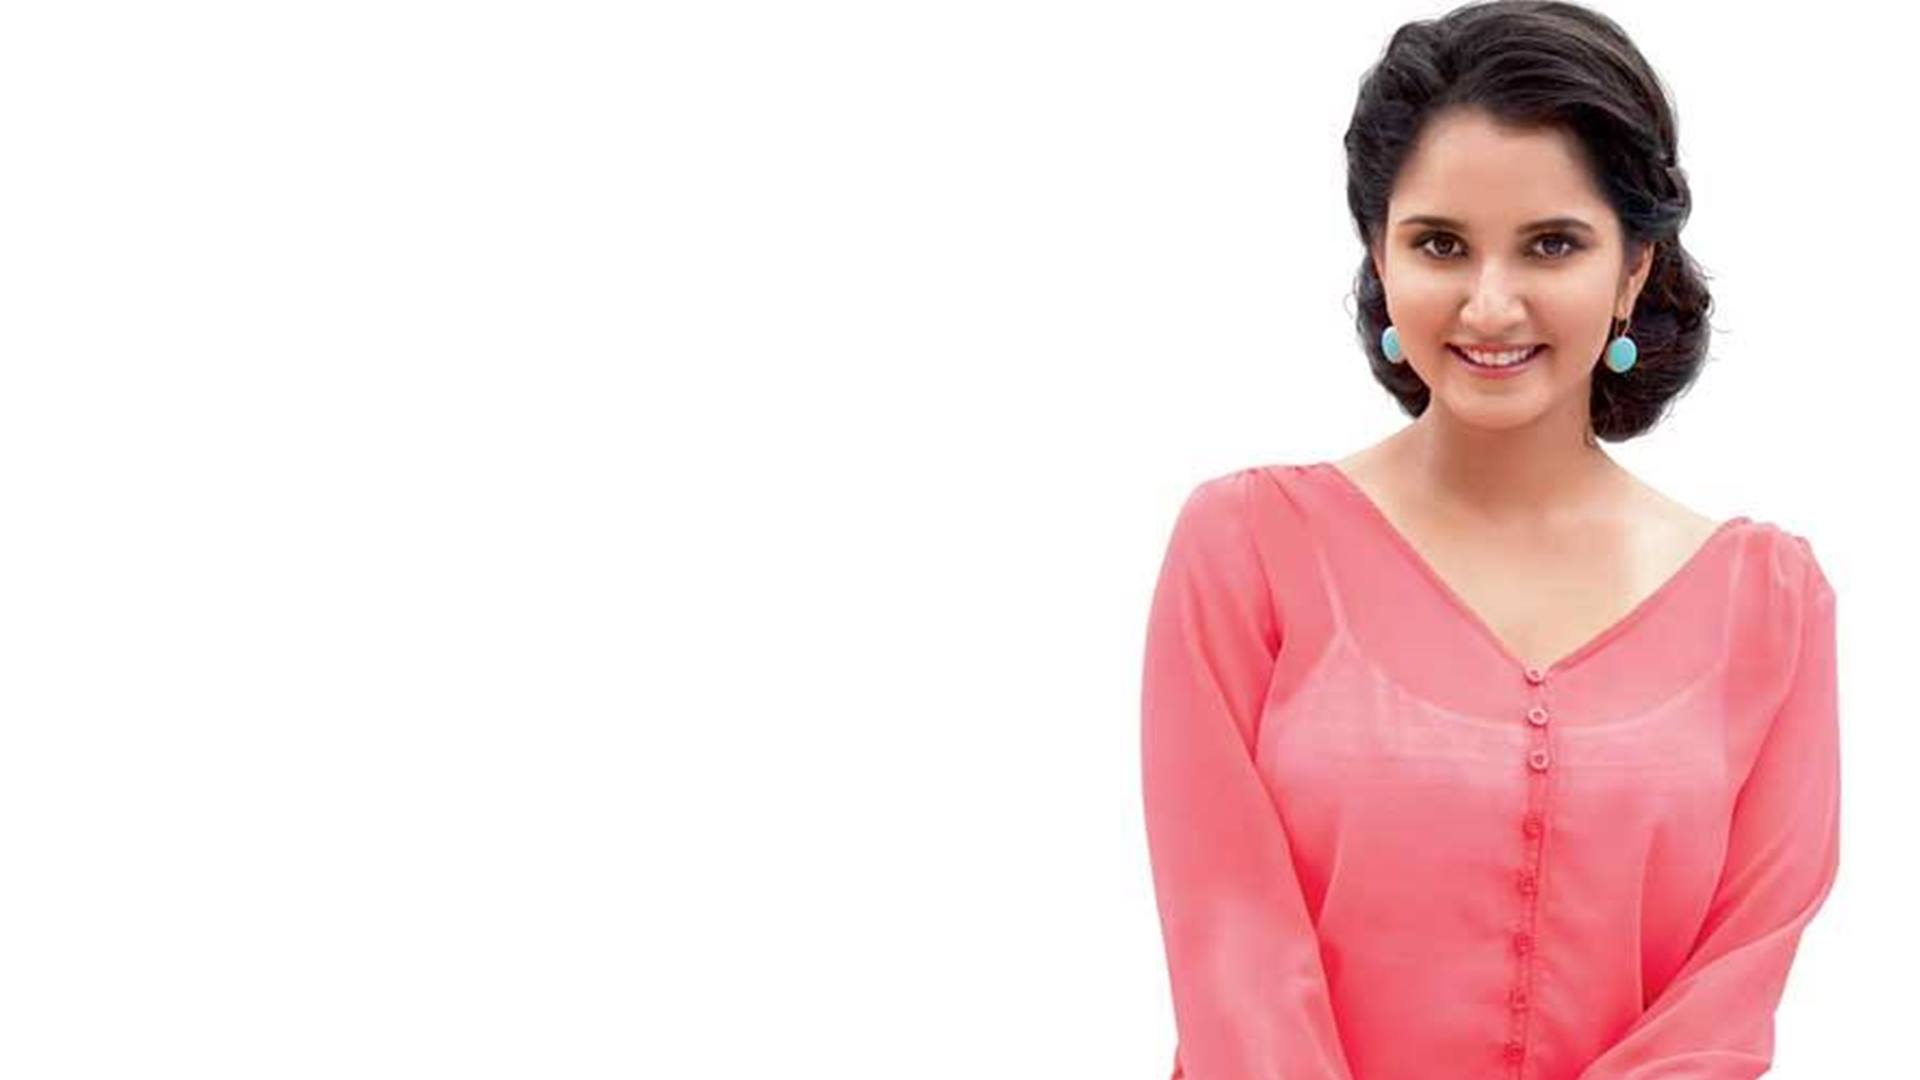 Cute-Sania-Mirza-In-Pink-Dress-Hd-Images-and-Pics